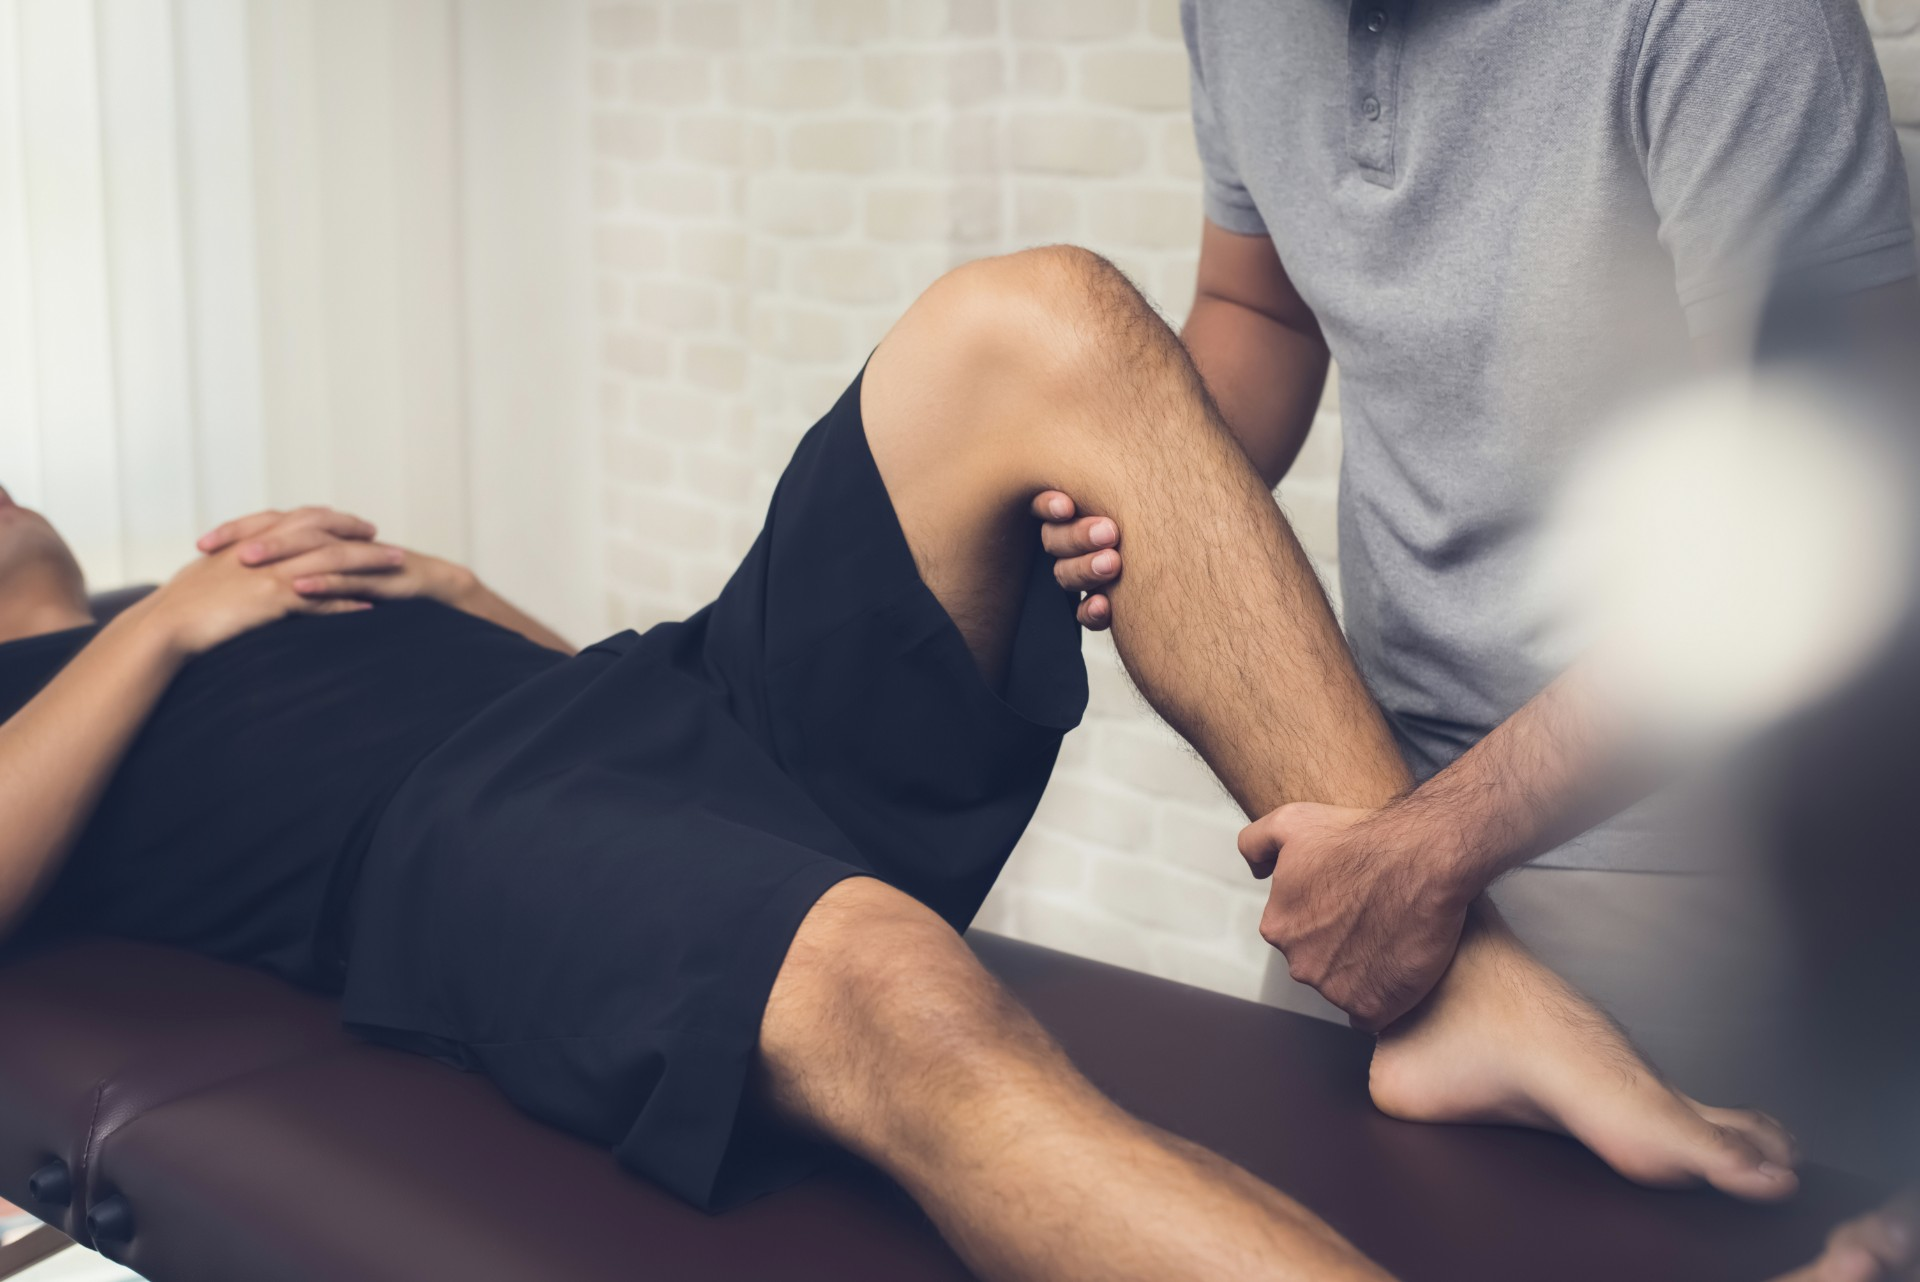 Recover From a Slip and Fall Injury With Chiropractic Care